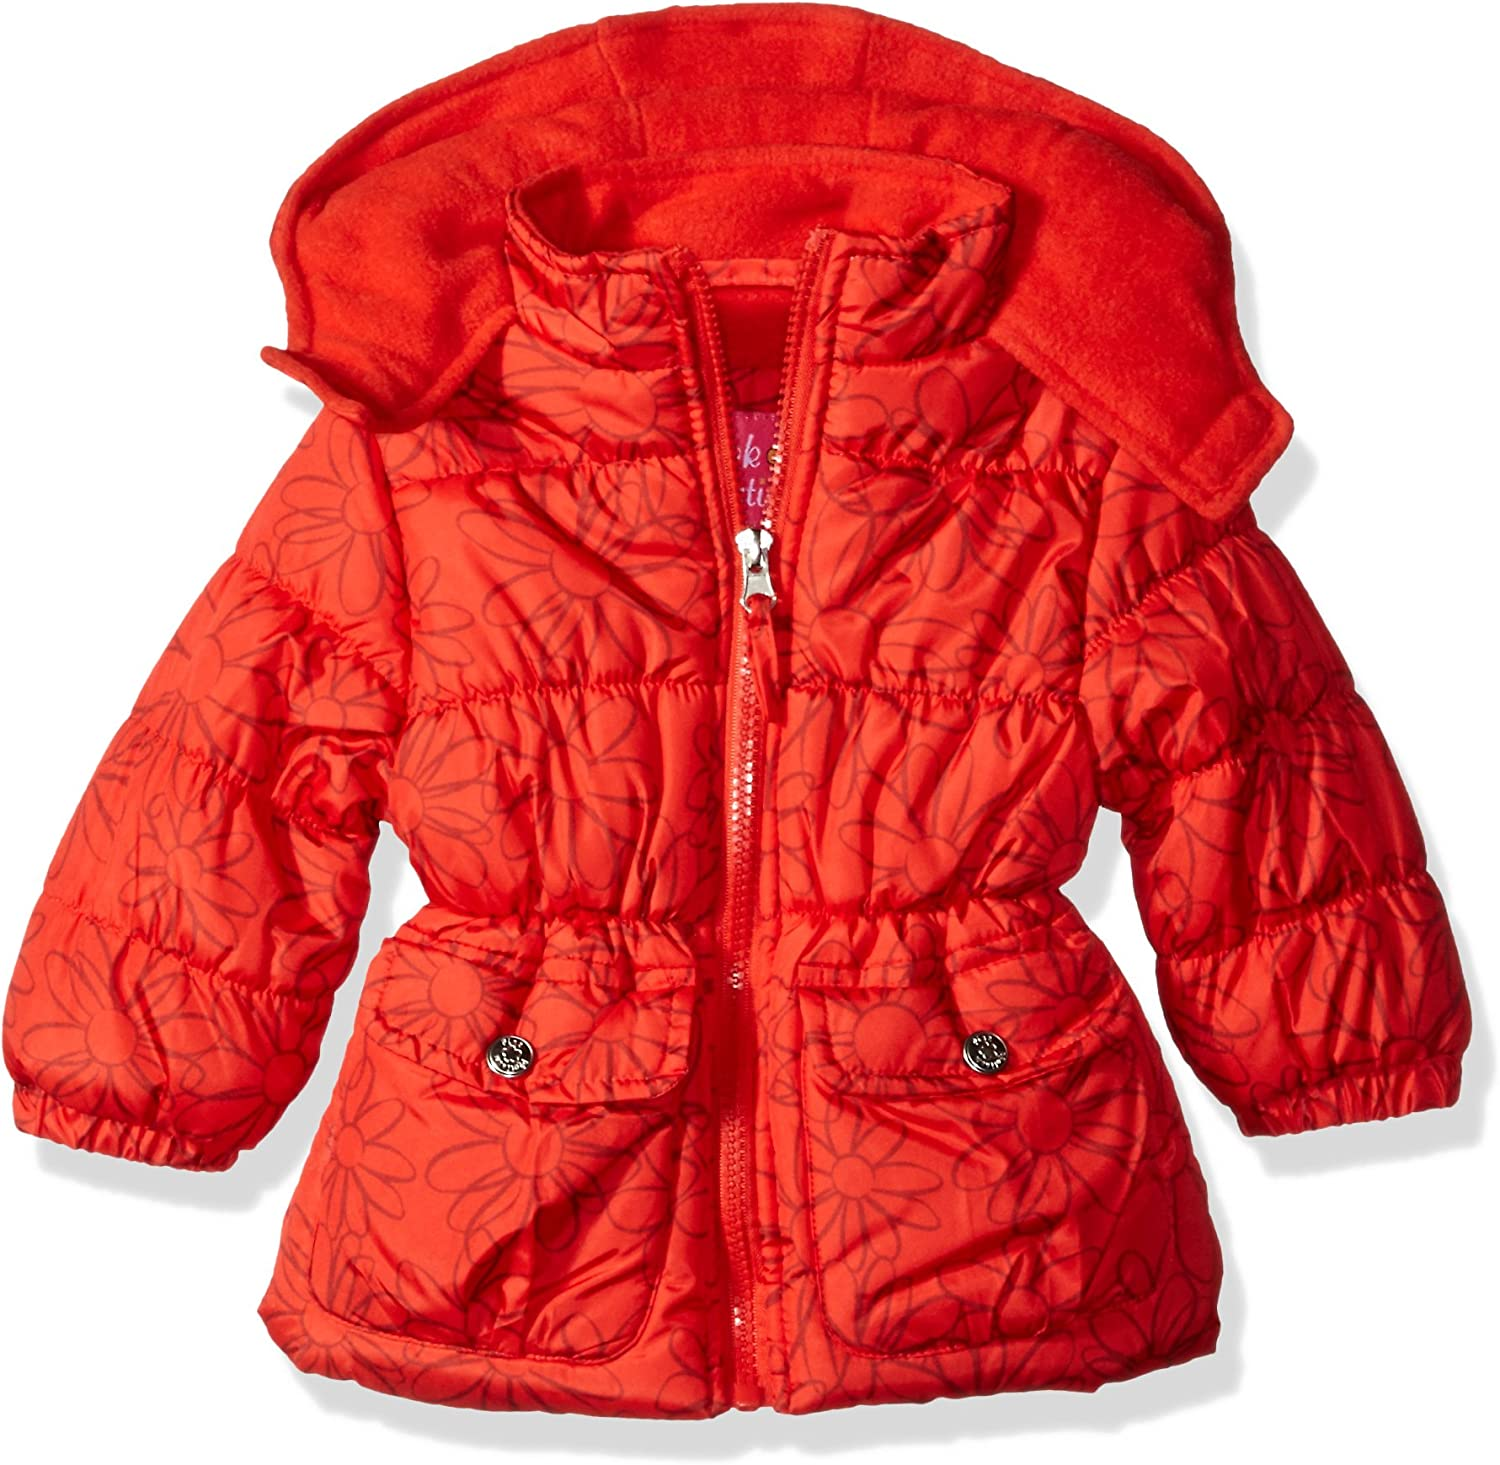 Pink Platinum Baby Girls' Infant Sales of SALE items from new works Regular discount Print Puffer Jacke Tonal Floral